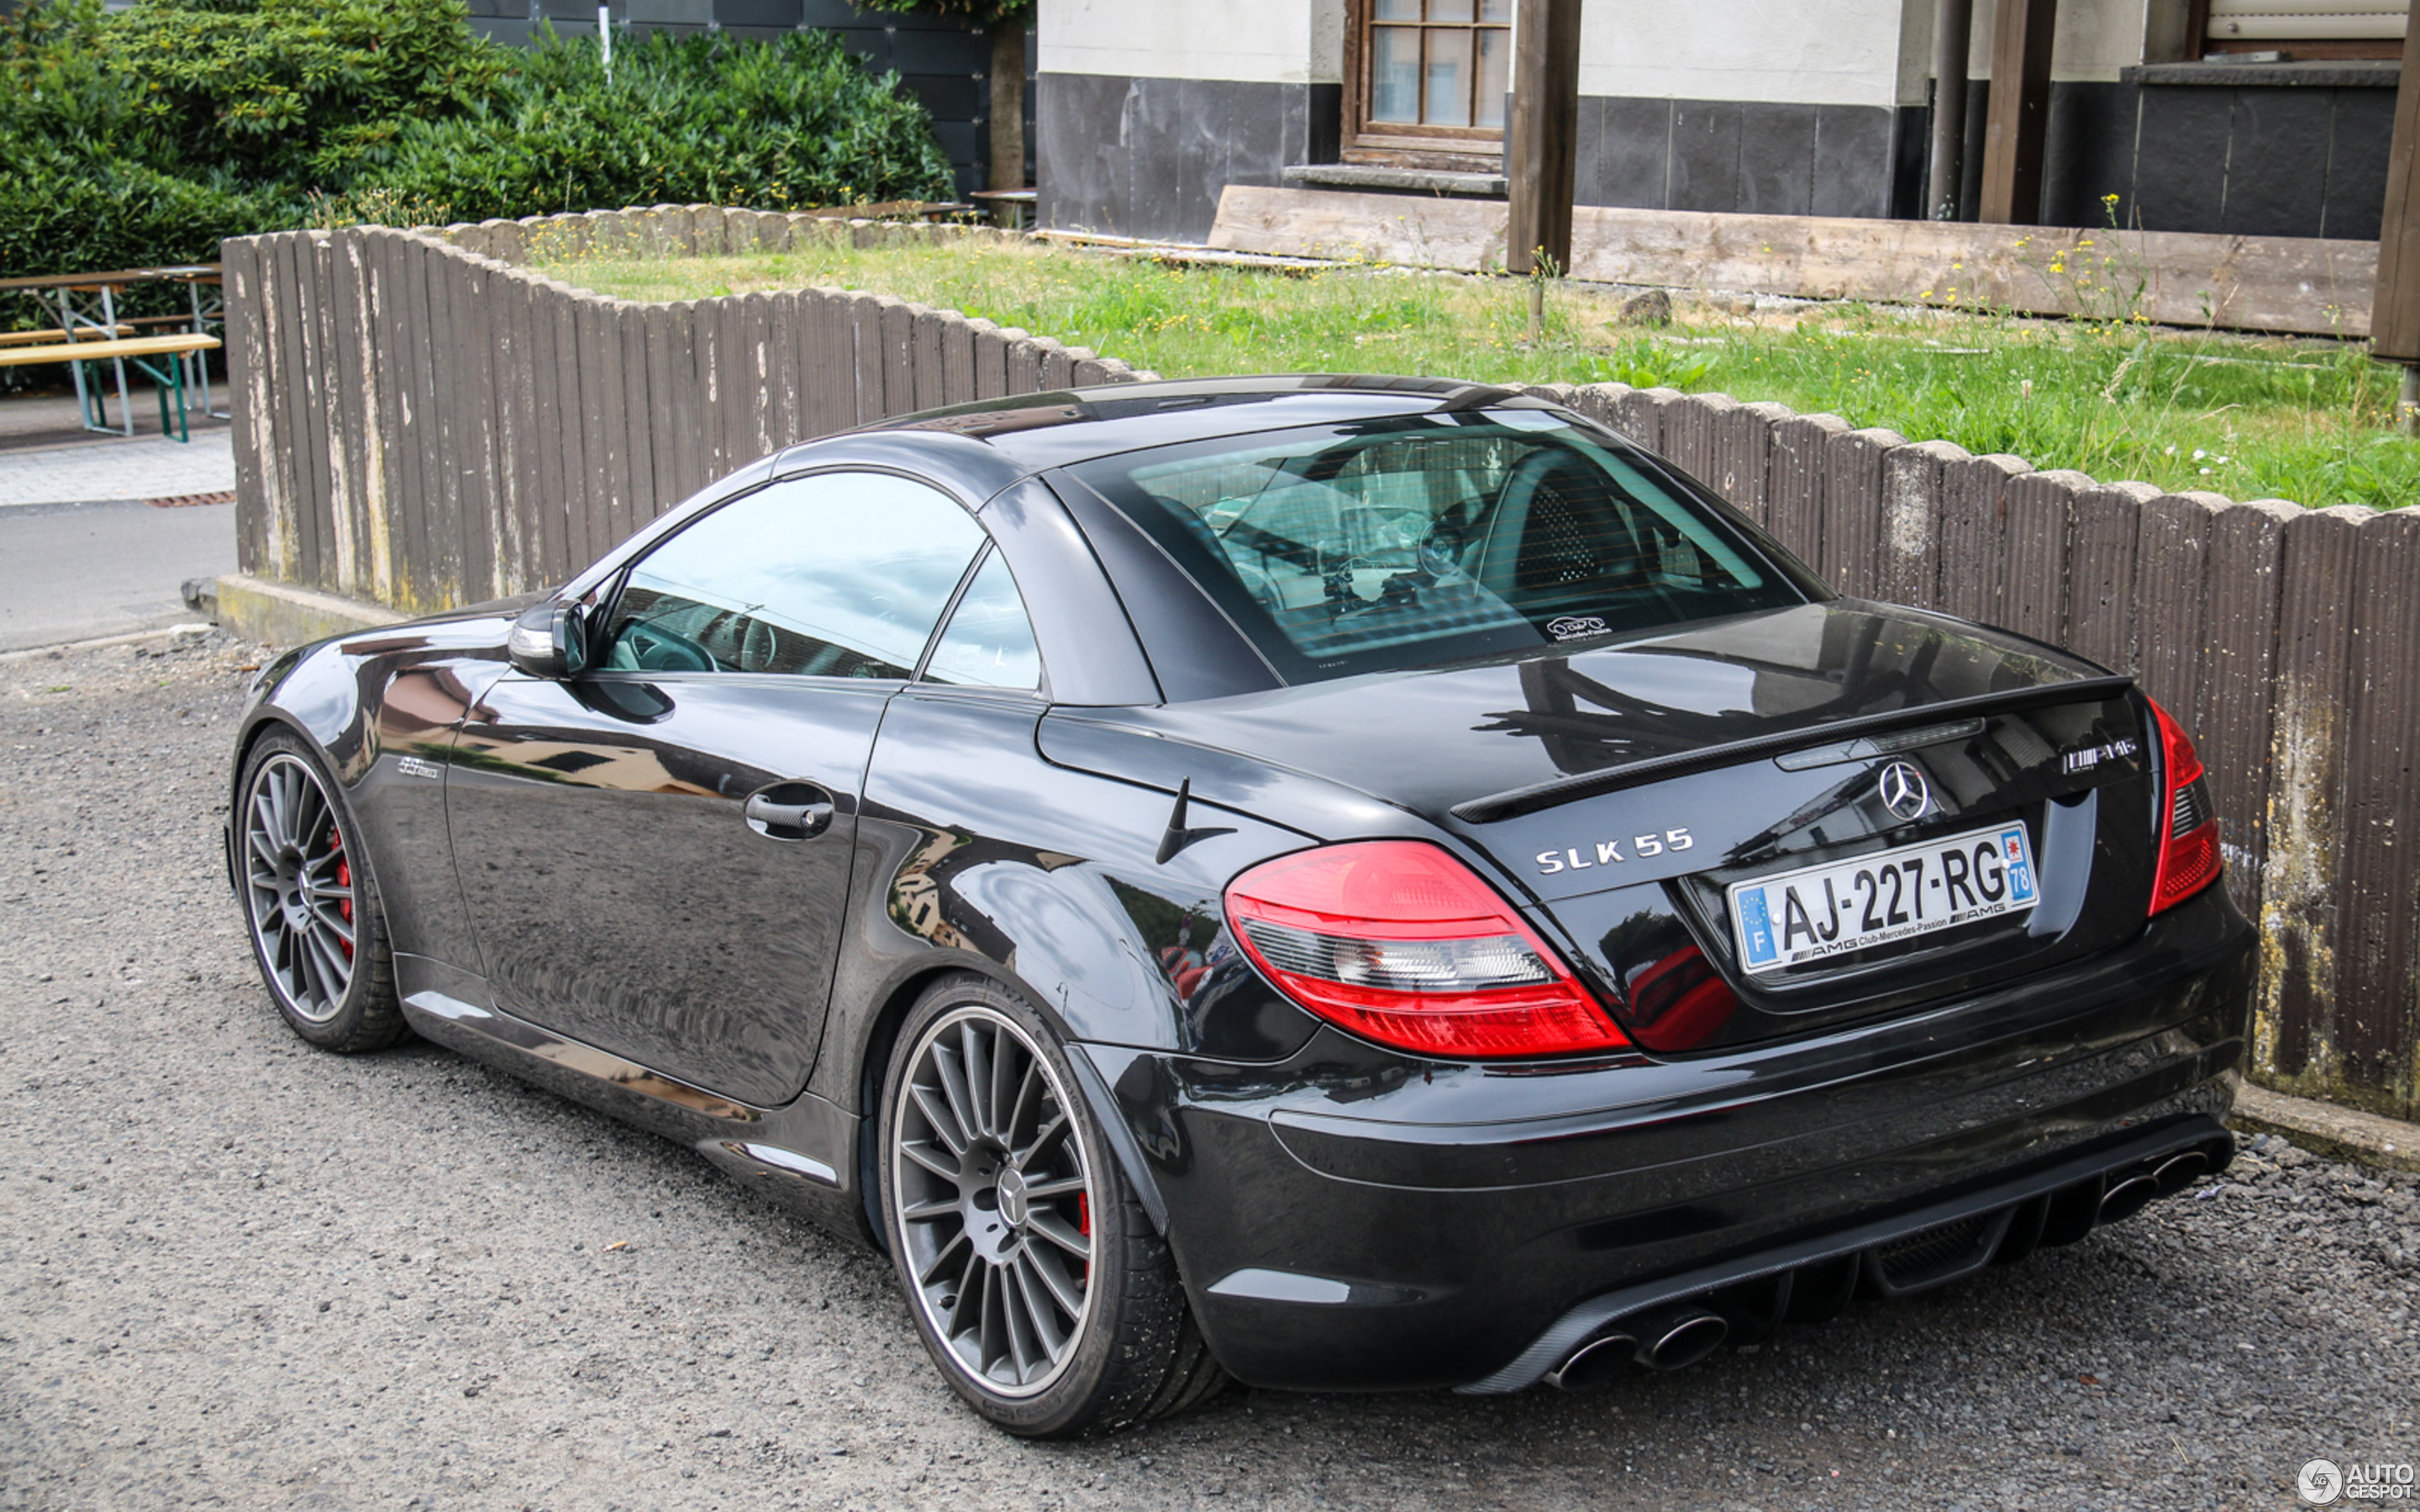 mercedes benz slk 55 amg r171 12 juillet 2015 autogespot. Black Bedroom Furniture Sets. Home Design Ideas